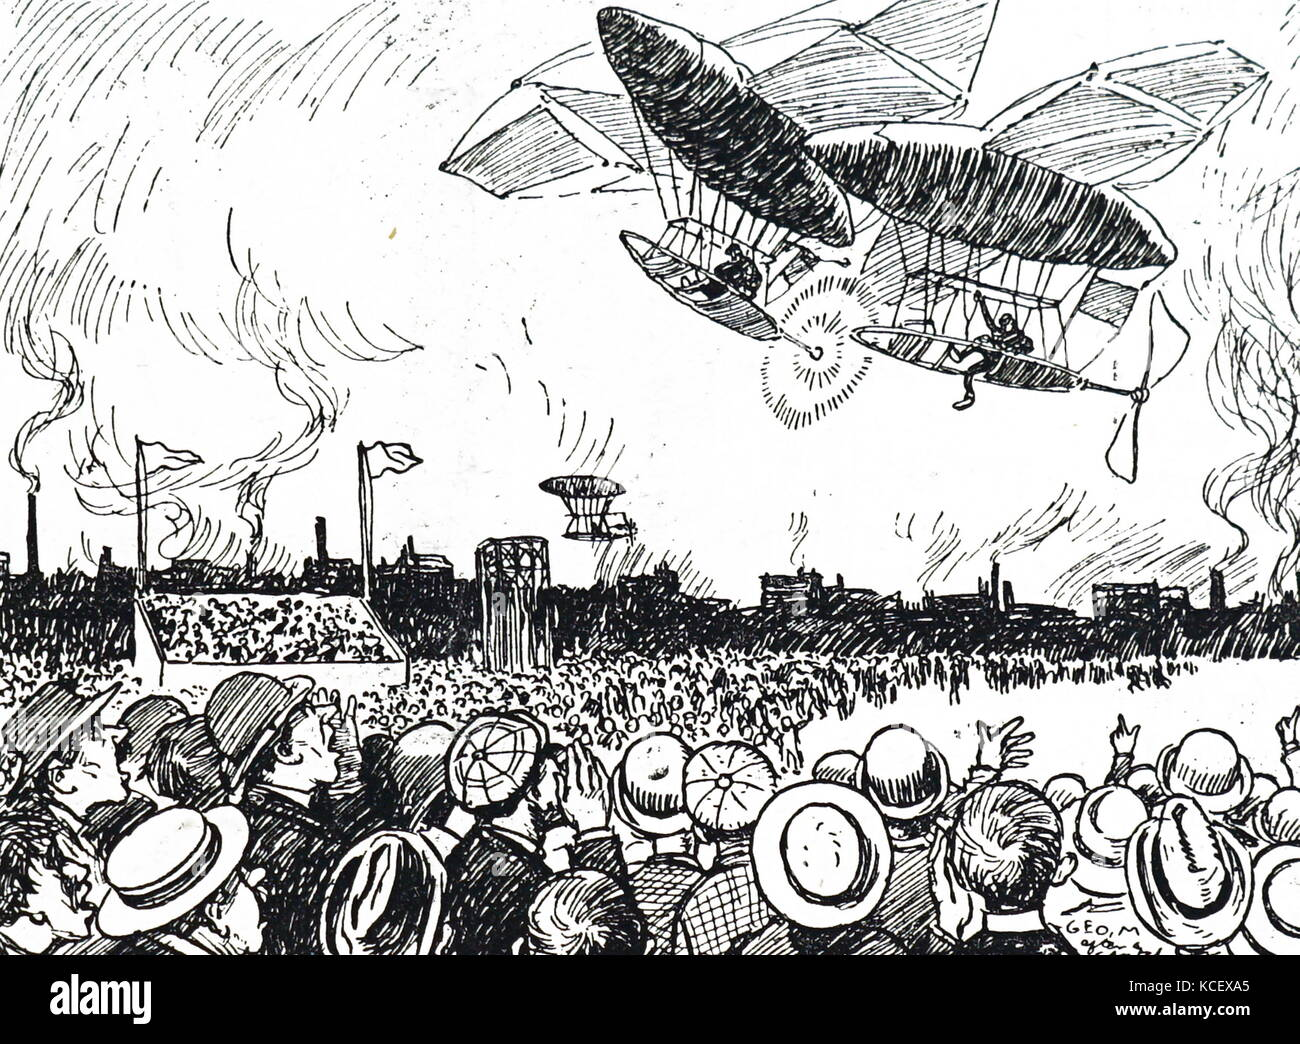 Cartoon depicting horrified spectators watching two aircrafts collide during an air-show. Dated 20th Century - Stock Image